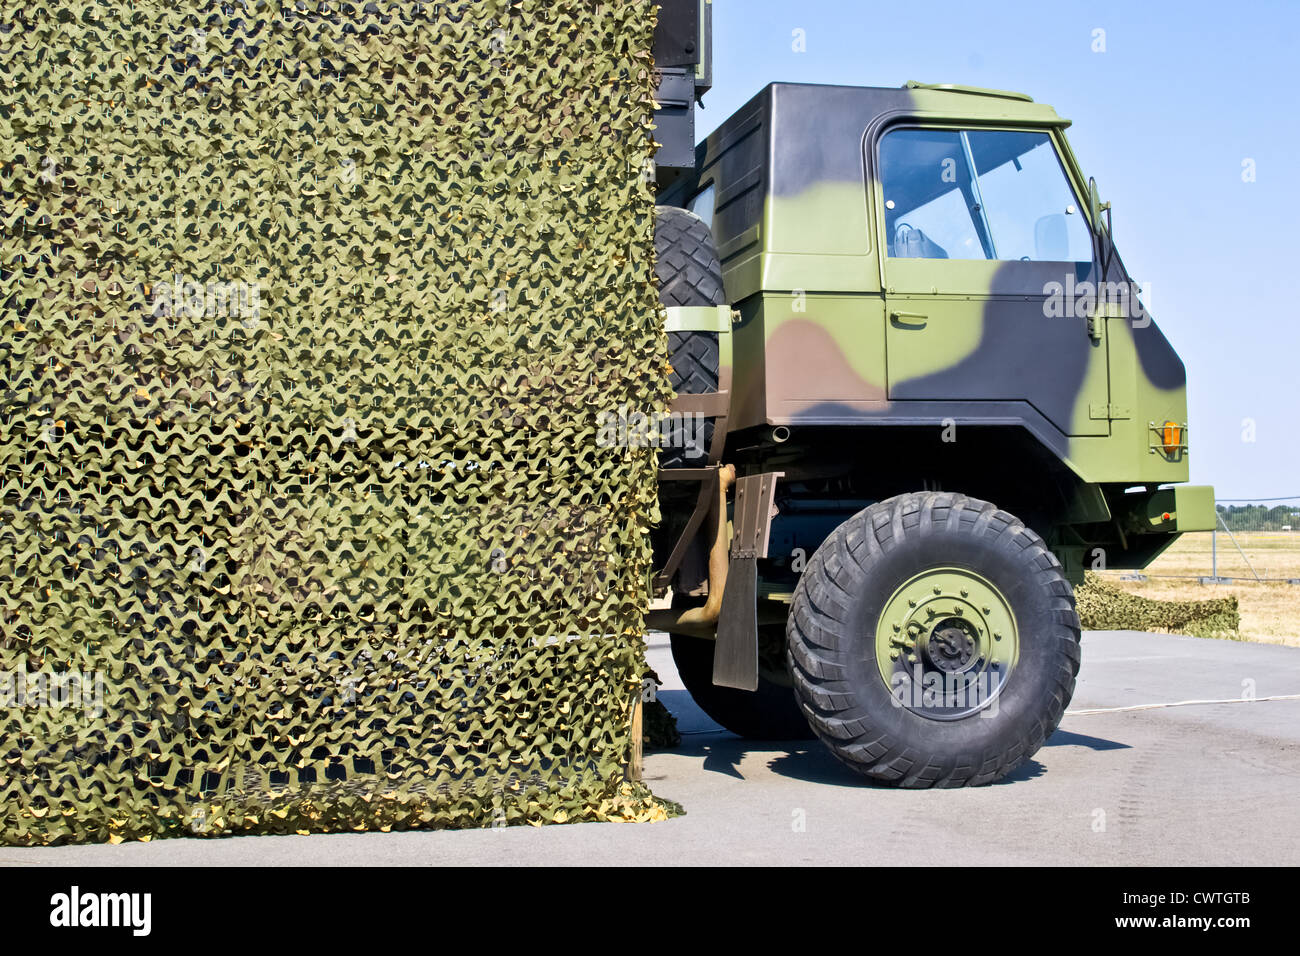 military vehicle hung with camouflage netting - Stock Image